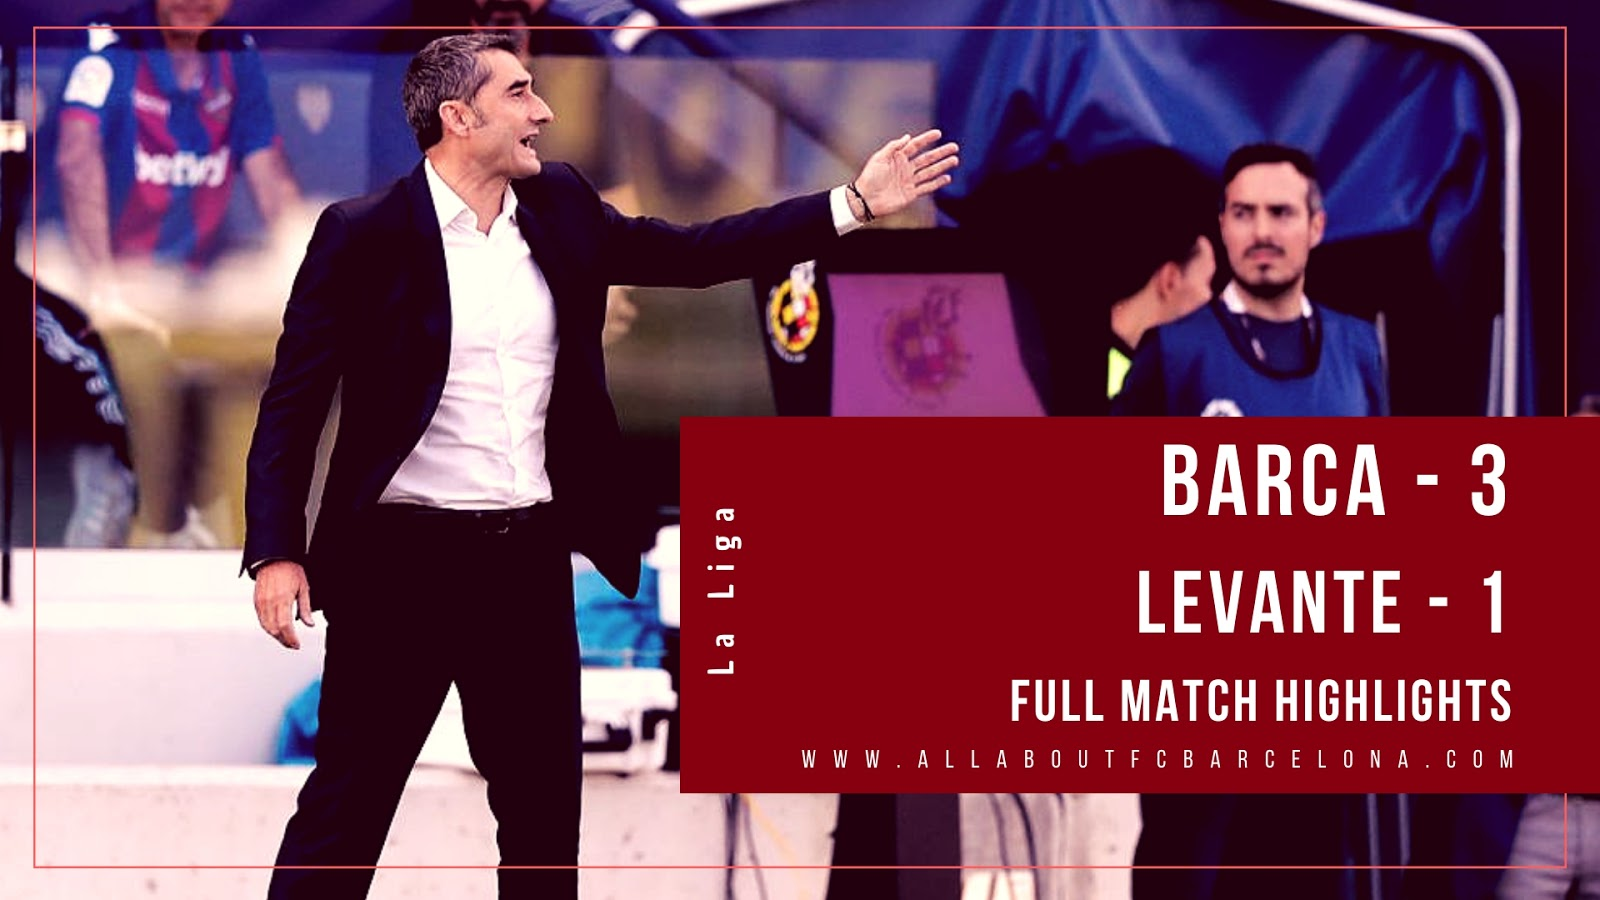 Barca vs Levante Full Match Highlights | Barca - 3, Levante - 1